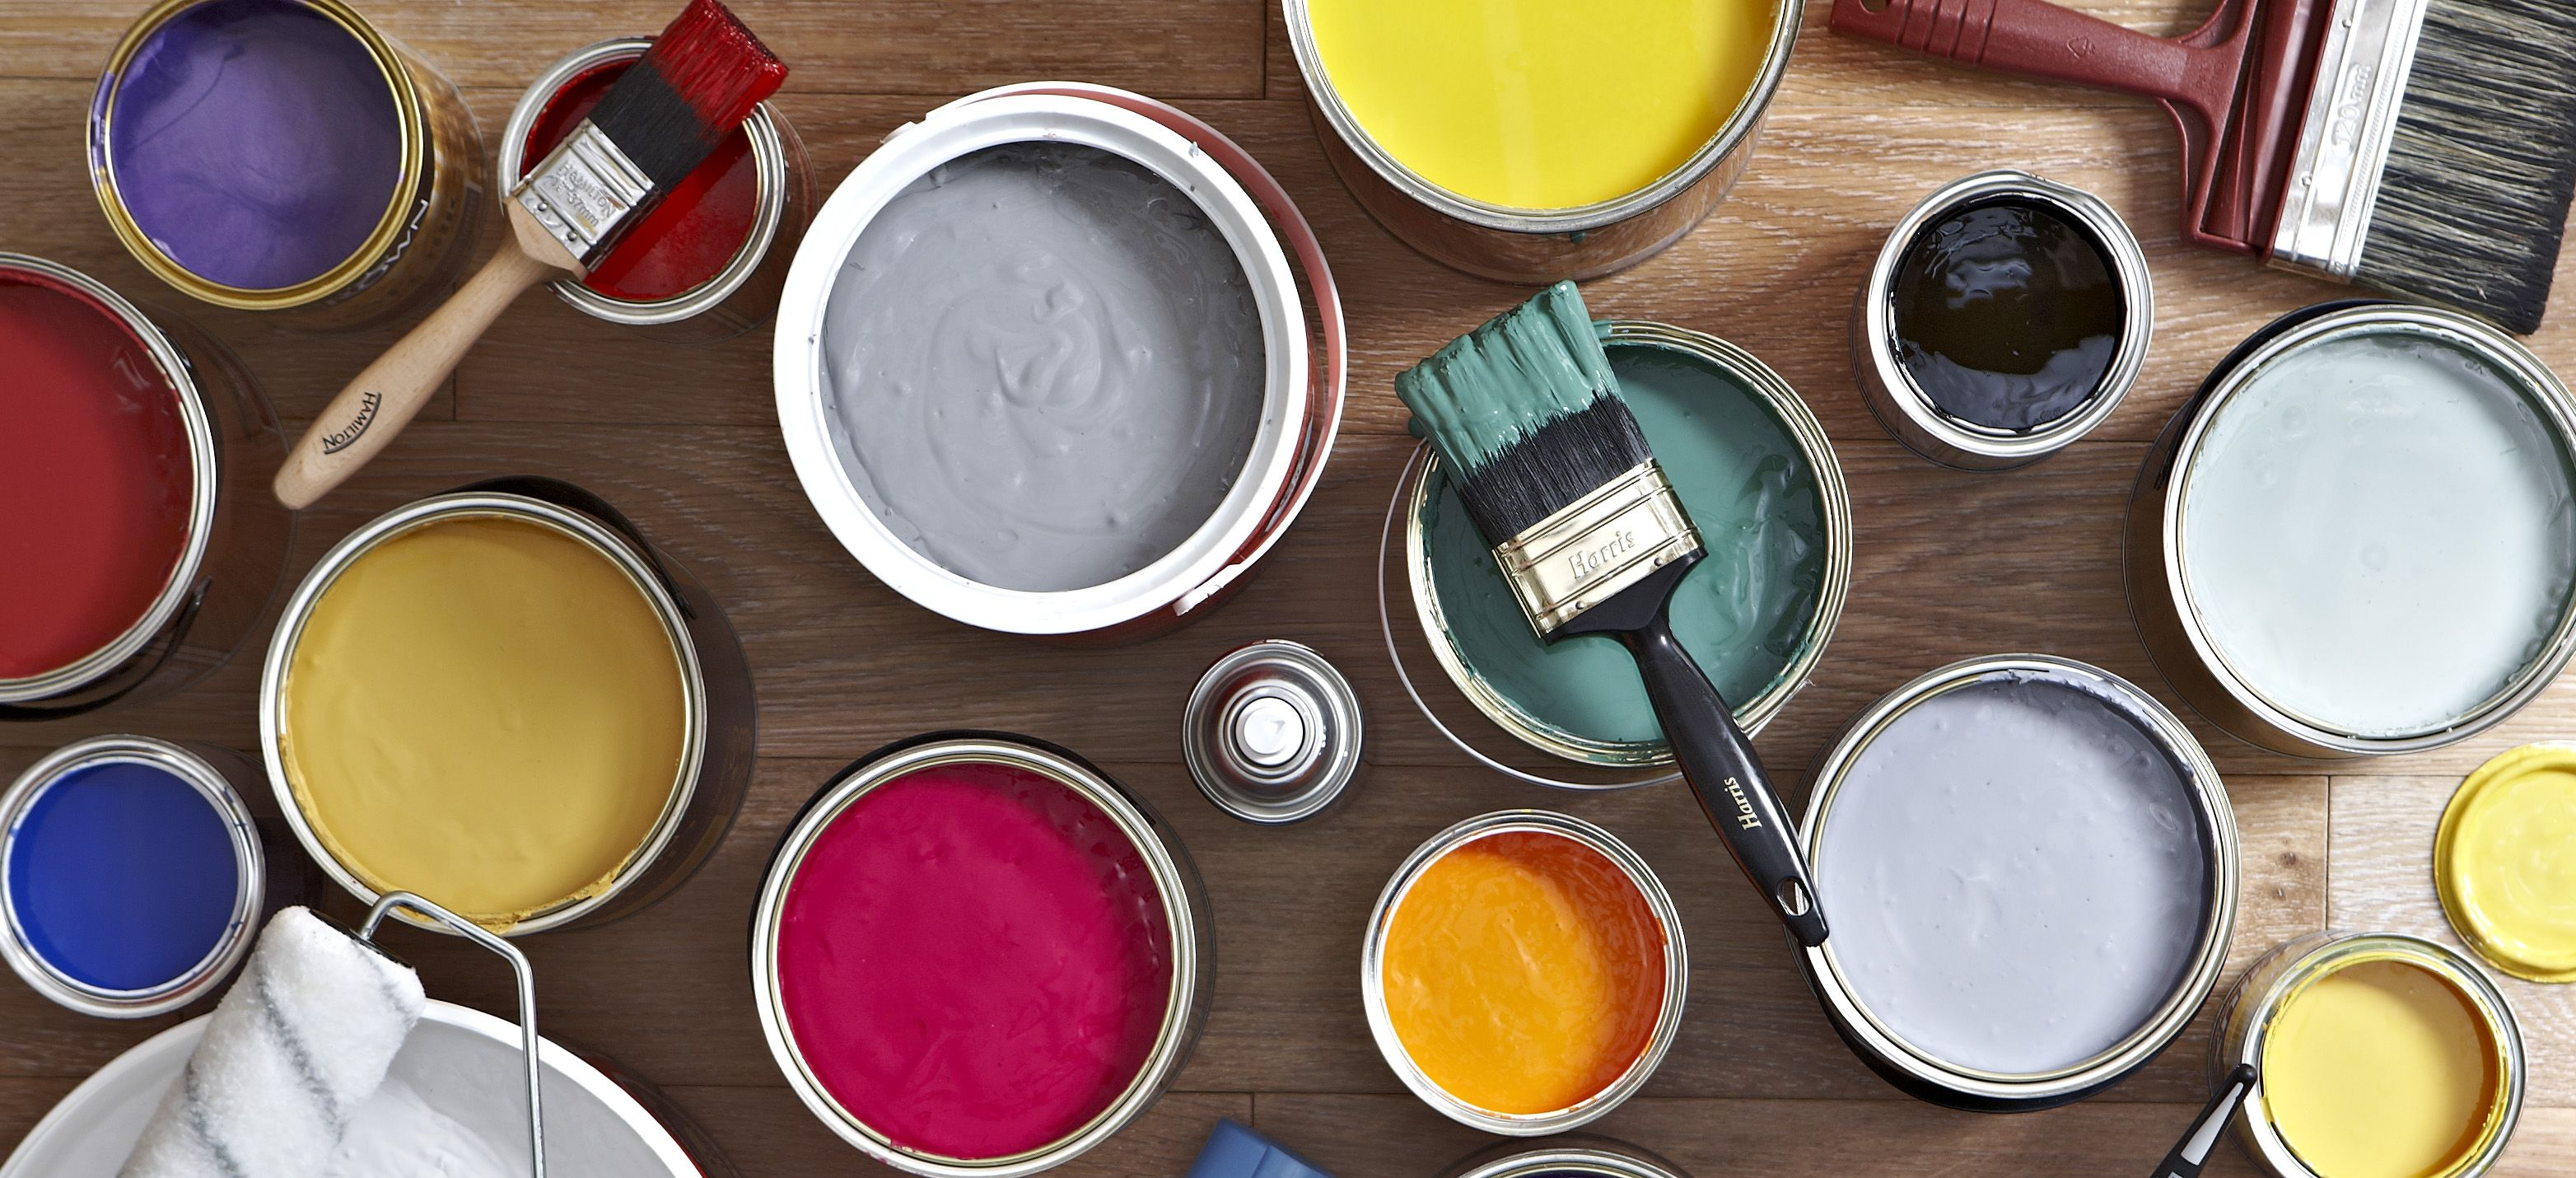 How to recycle paint and paint cans help ideas diy for Pot painting materials required